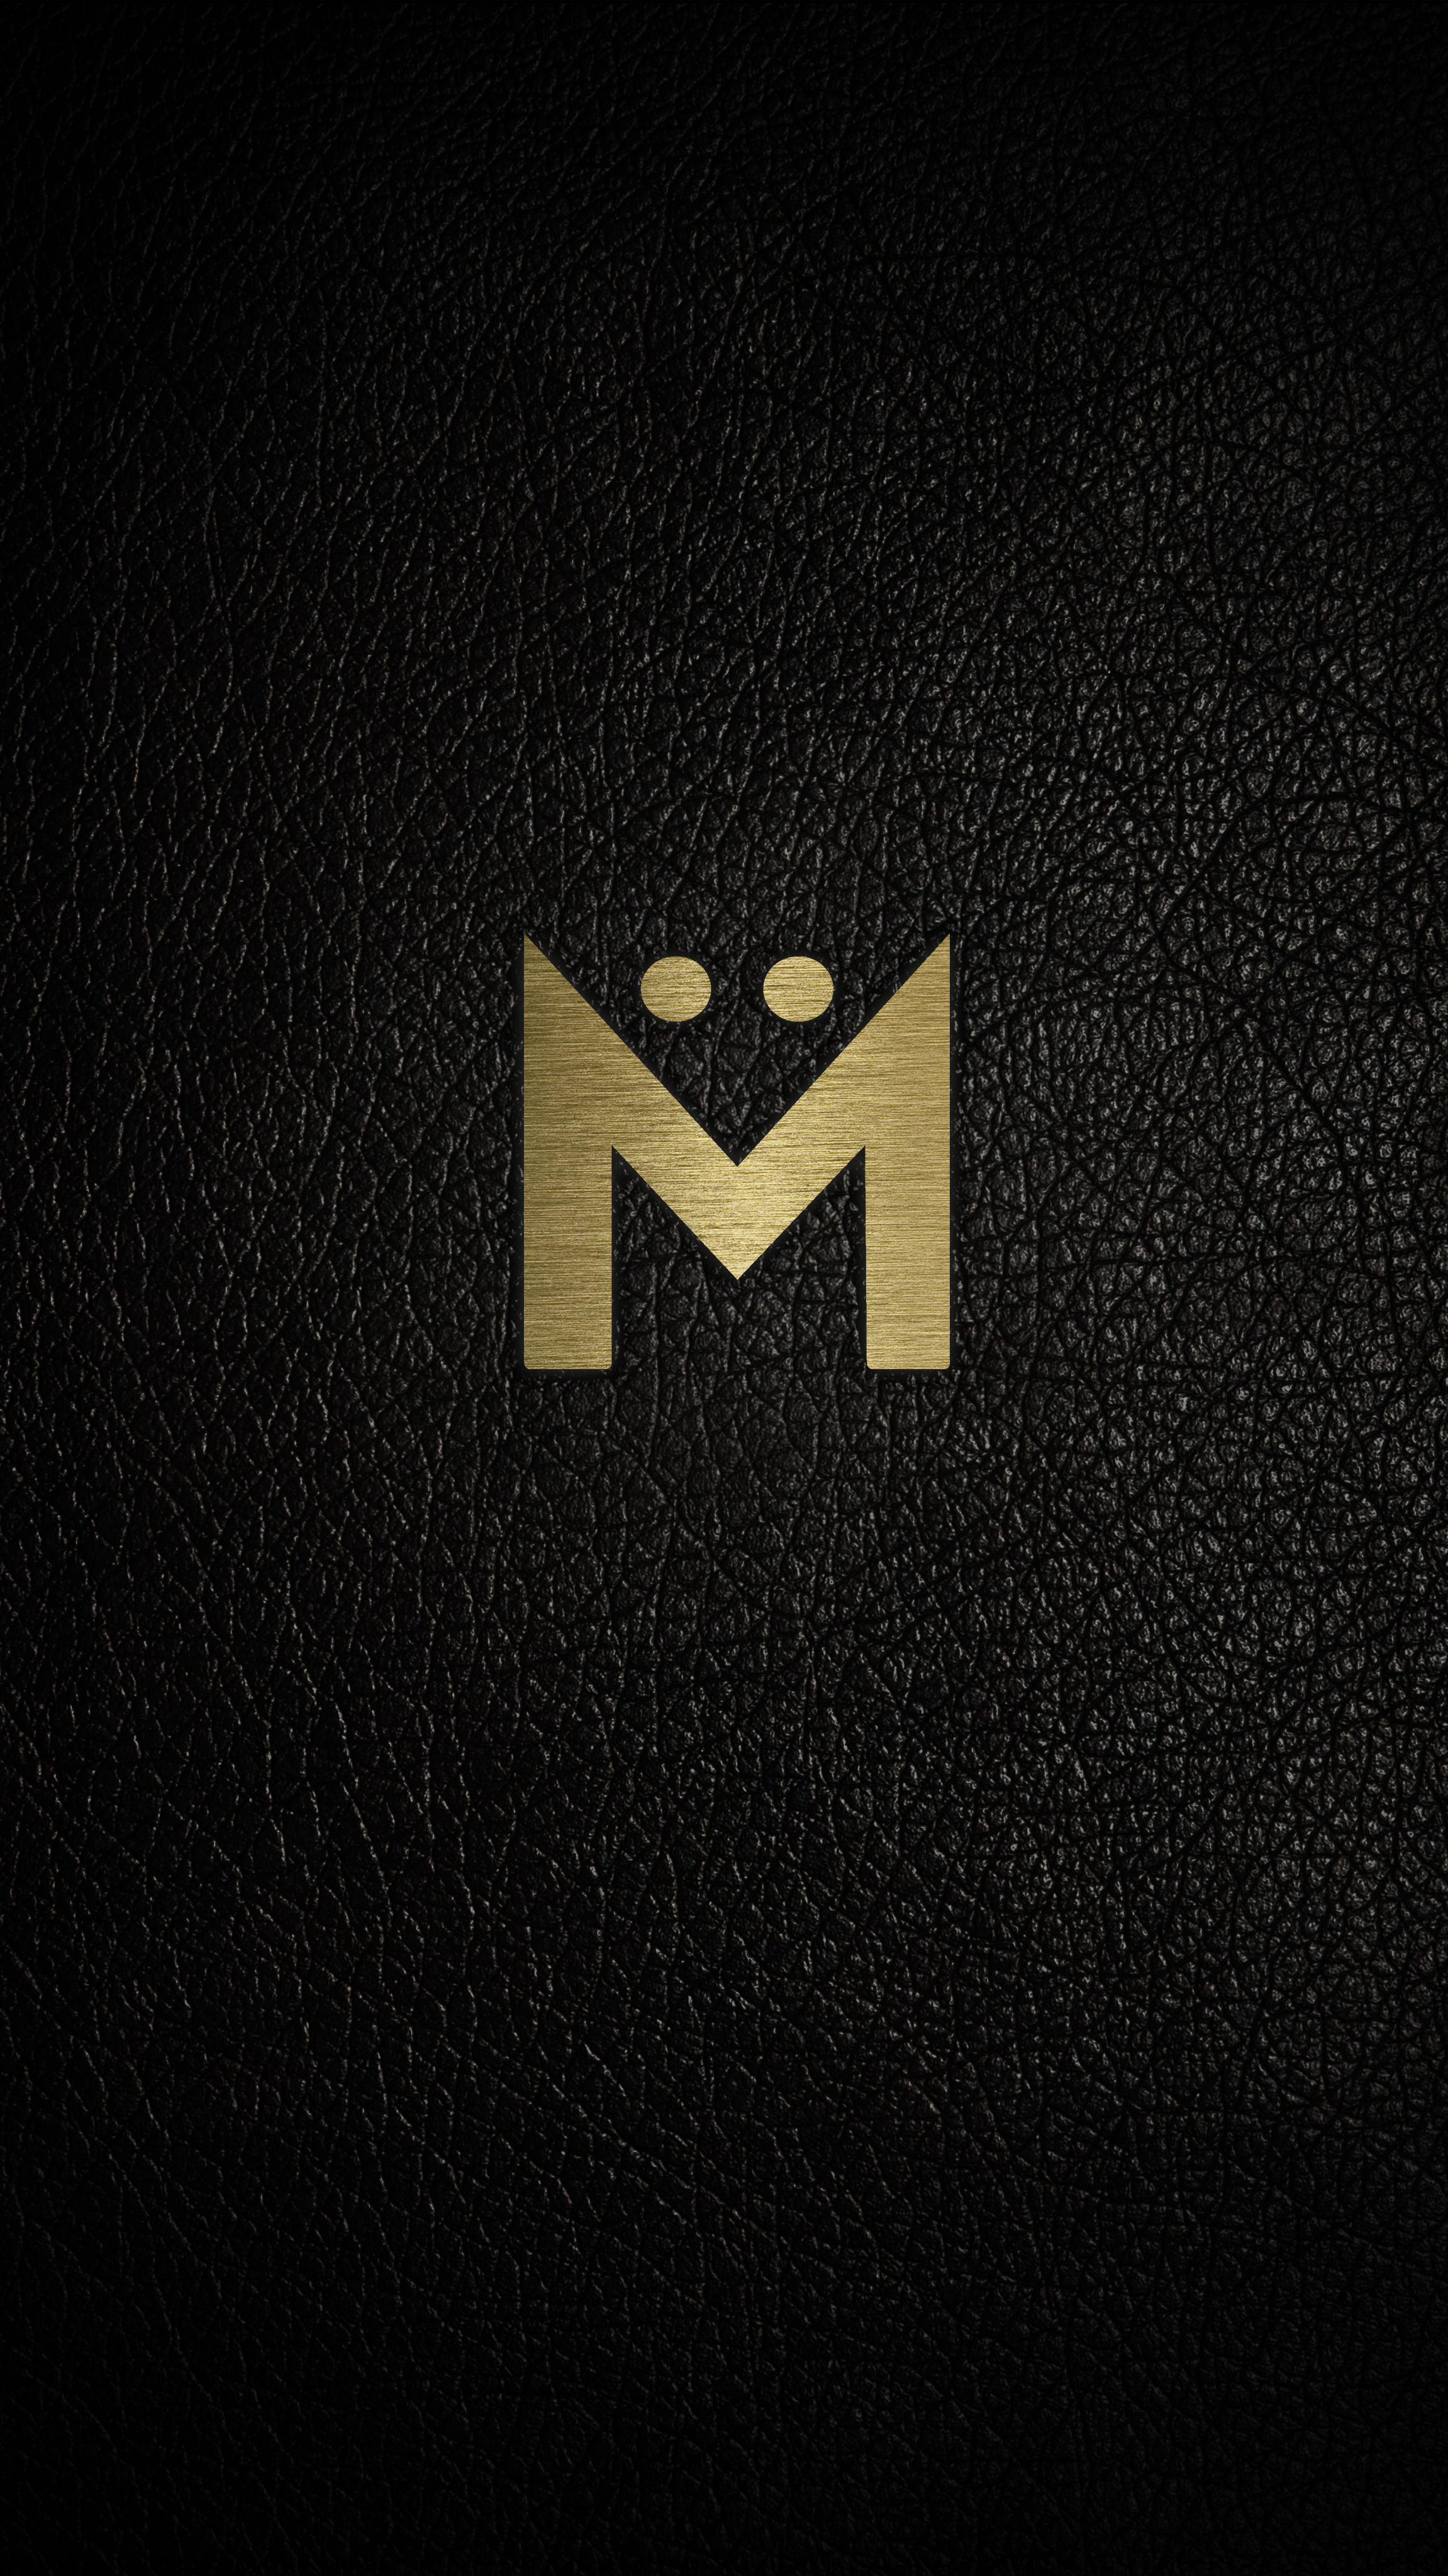 - Logo in Gold positioned on leather.